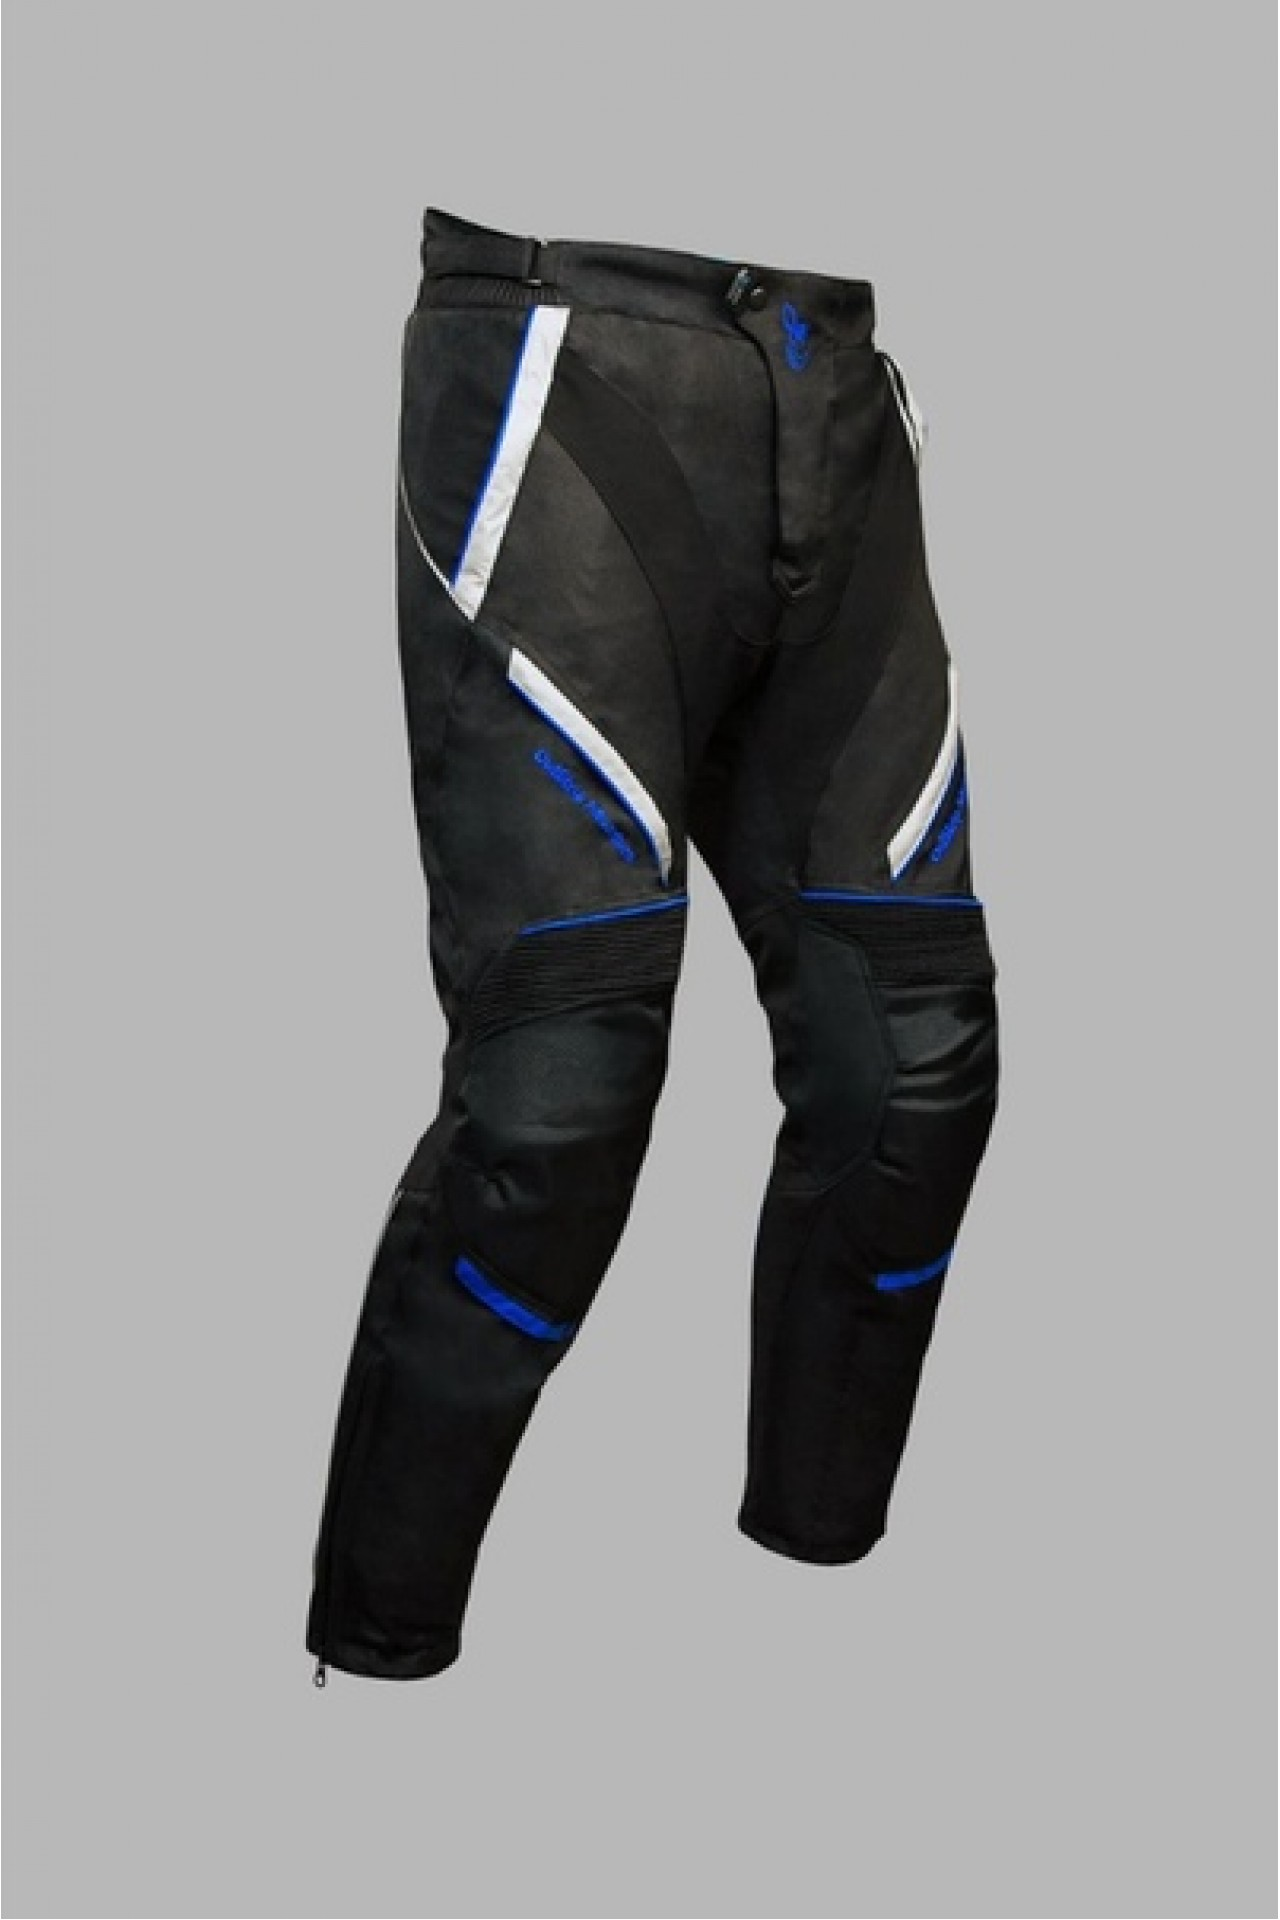 Color: Blue-black